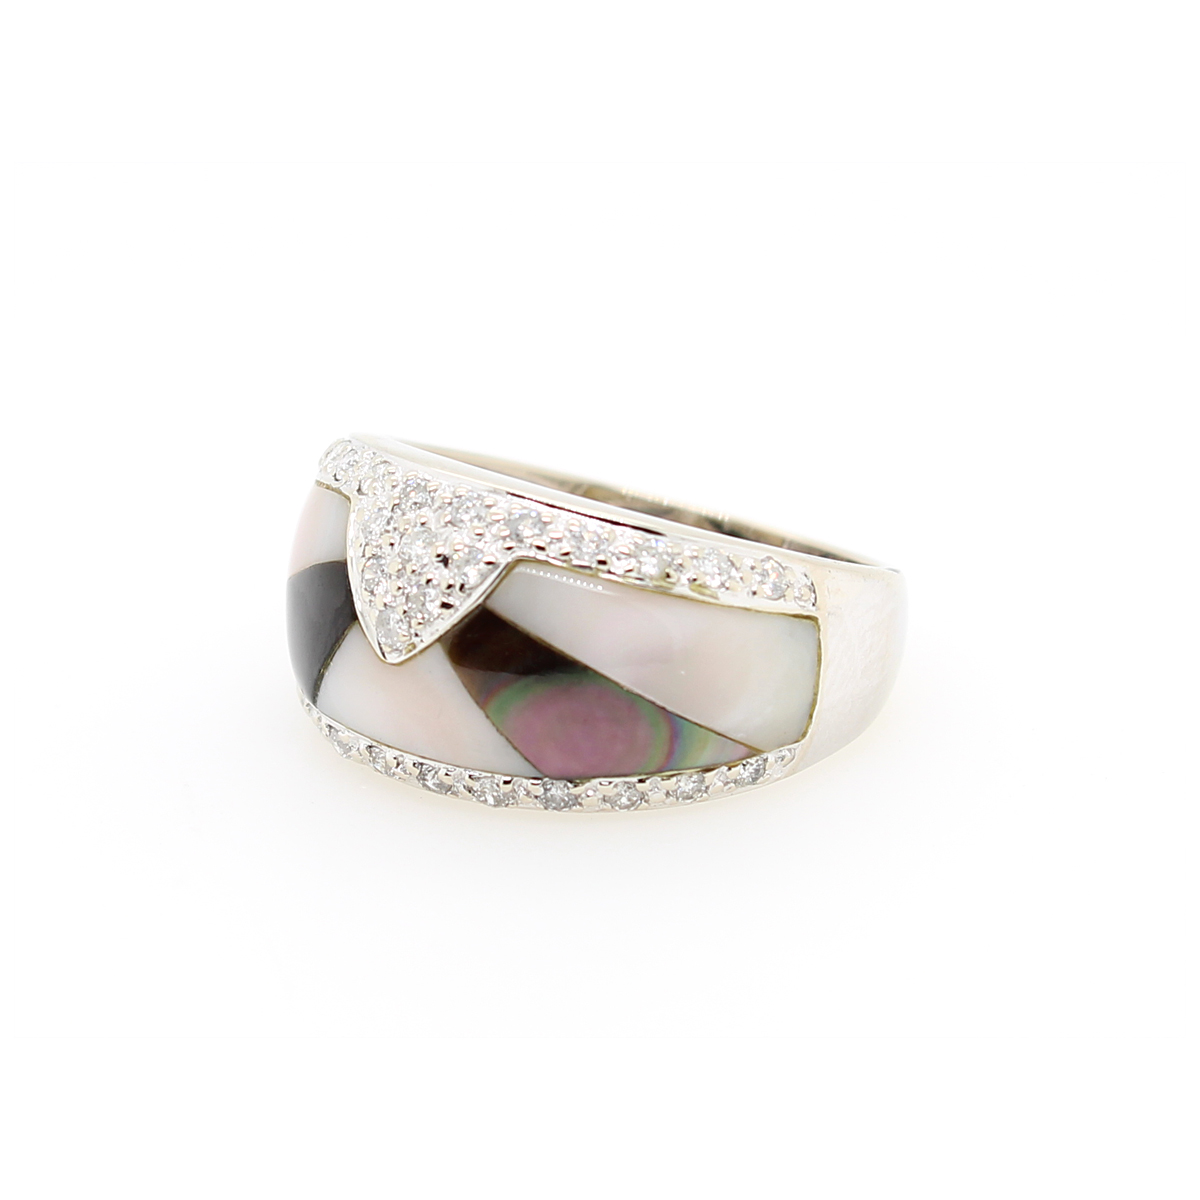 Vintage 14 Karat White Gold Pink and Black Mother of Pearl Ring